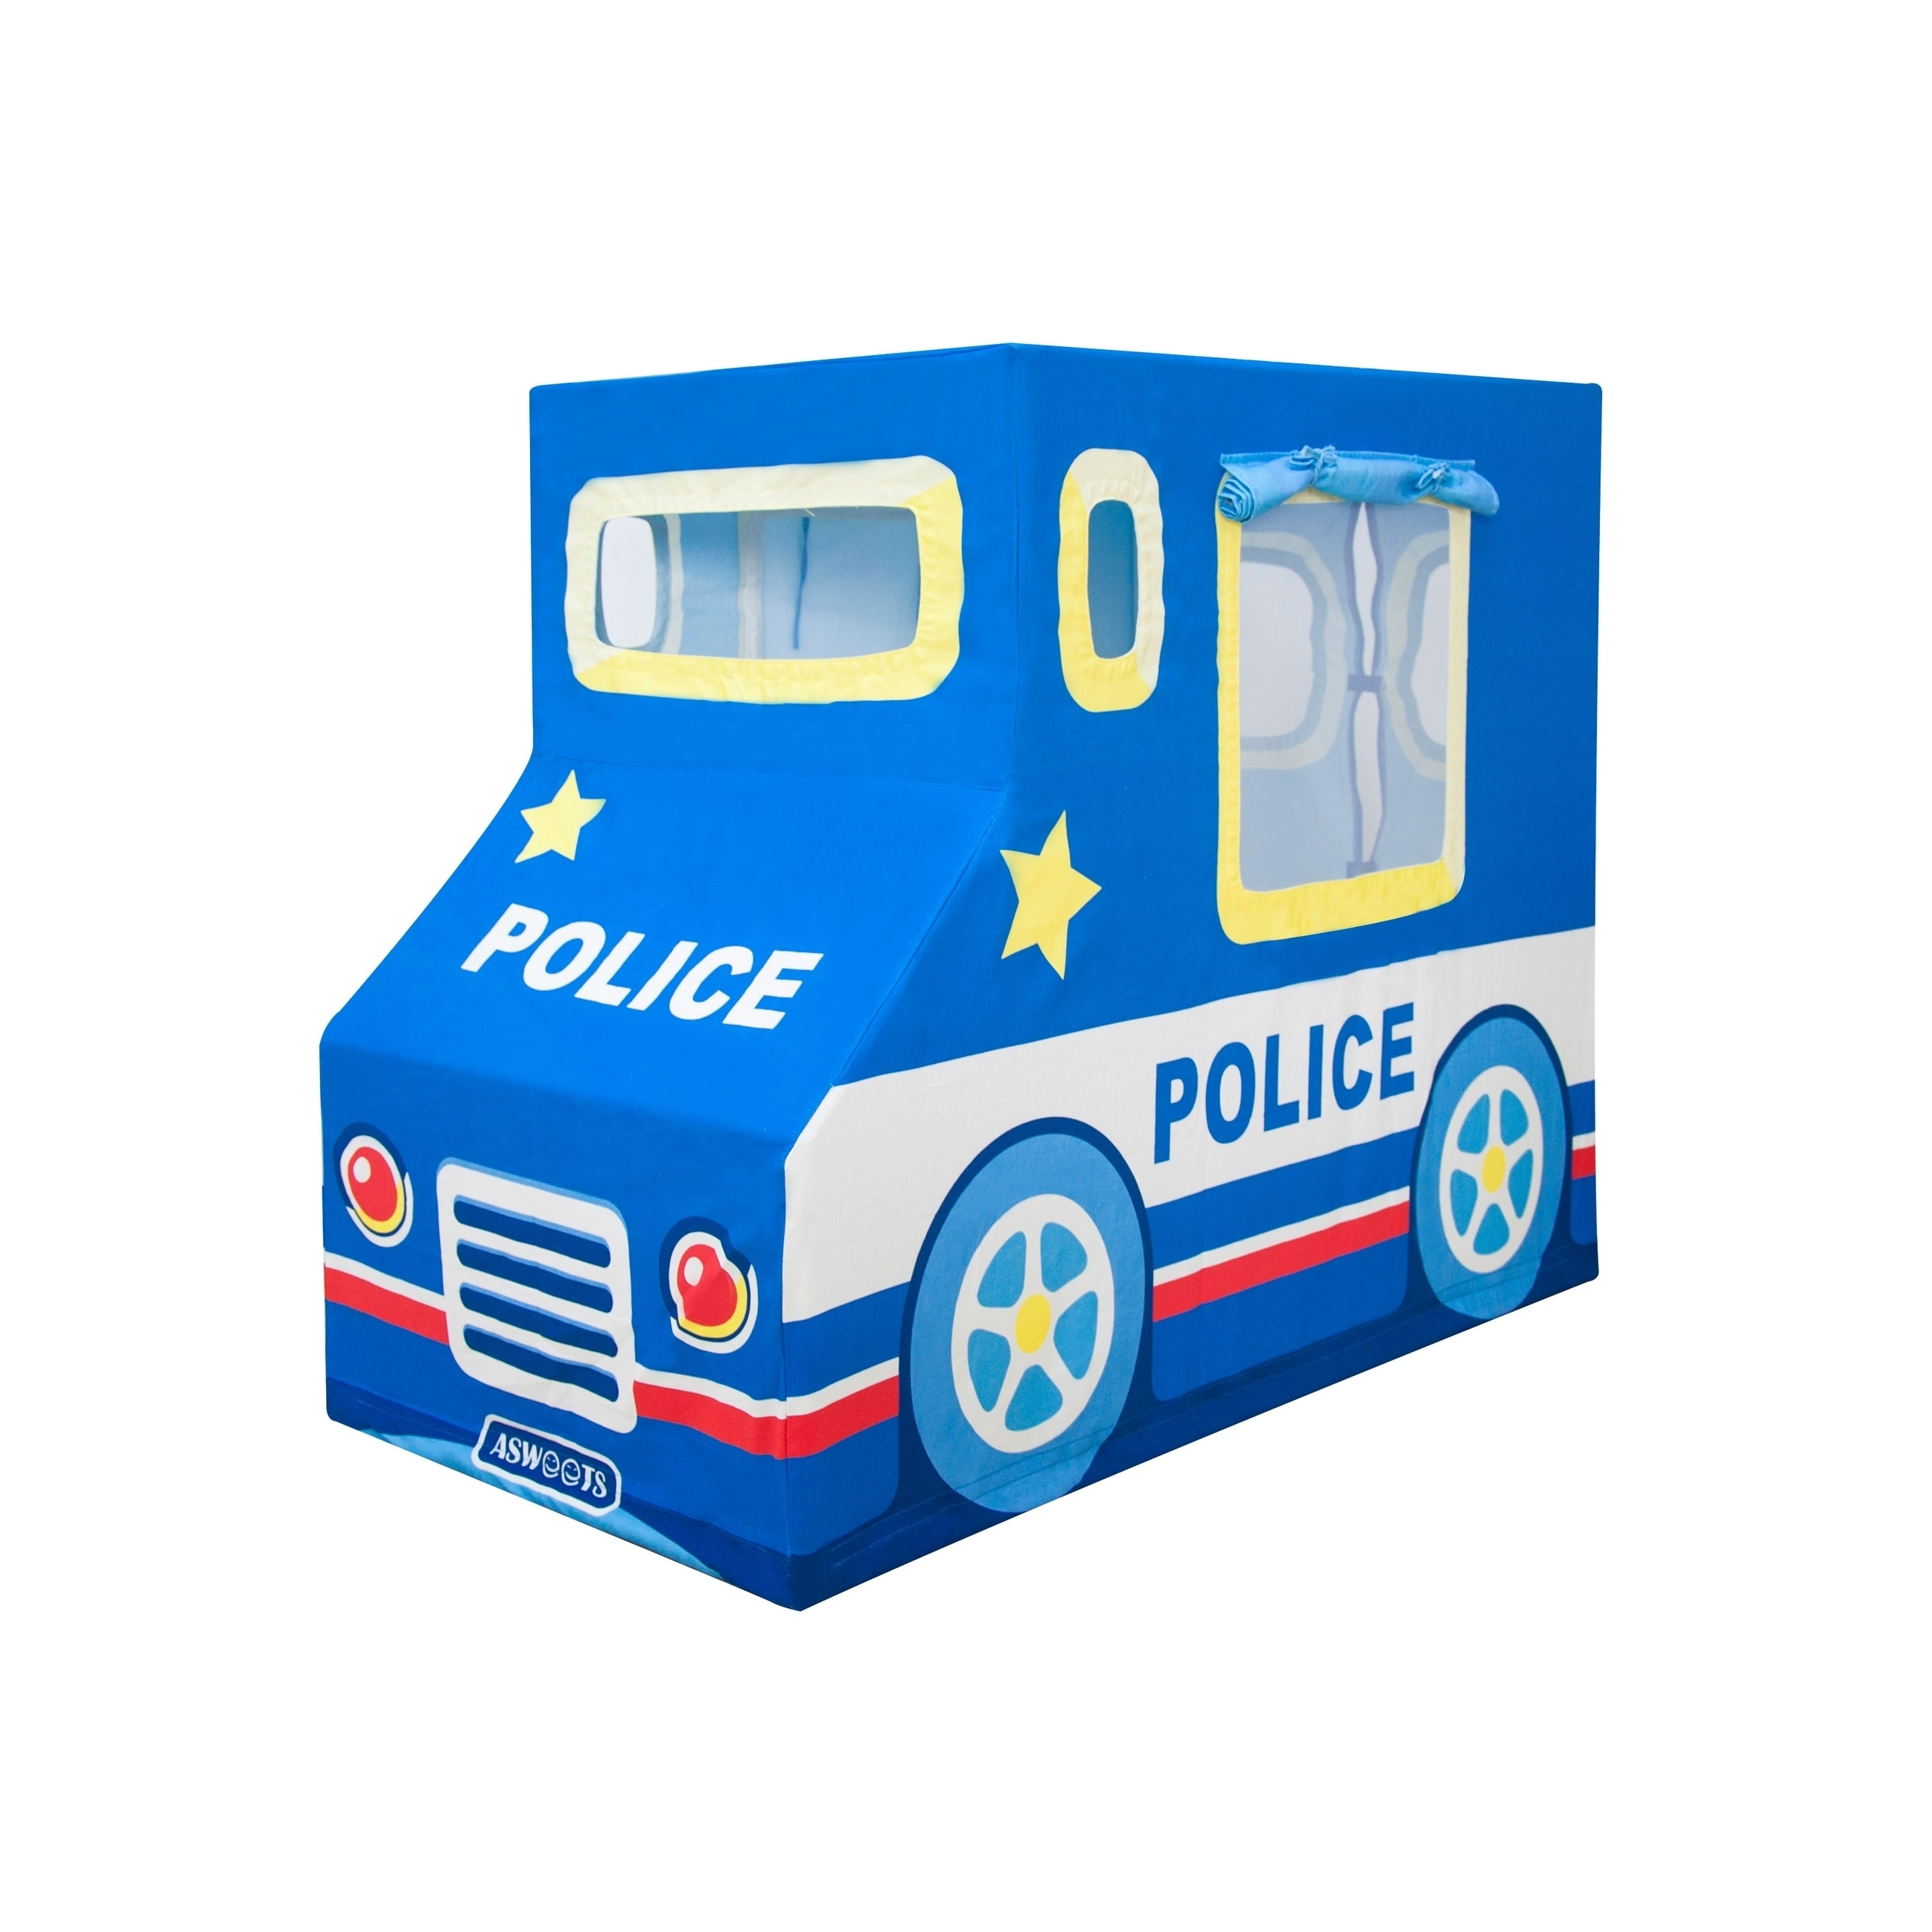 Shop Asweets Police Car Indoor Canvas Playhouse Play Tent For Kids